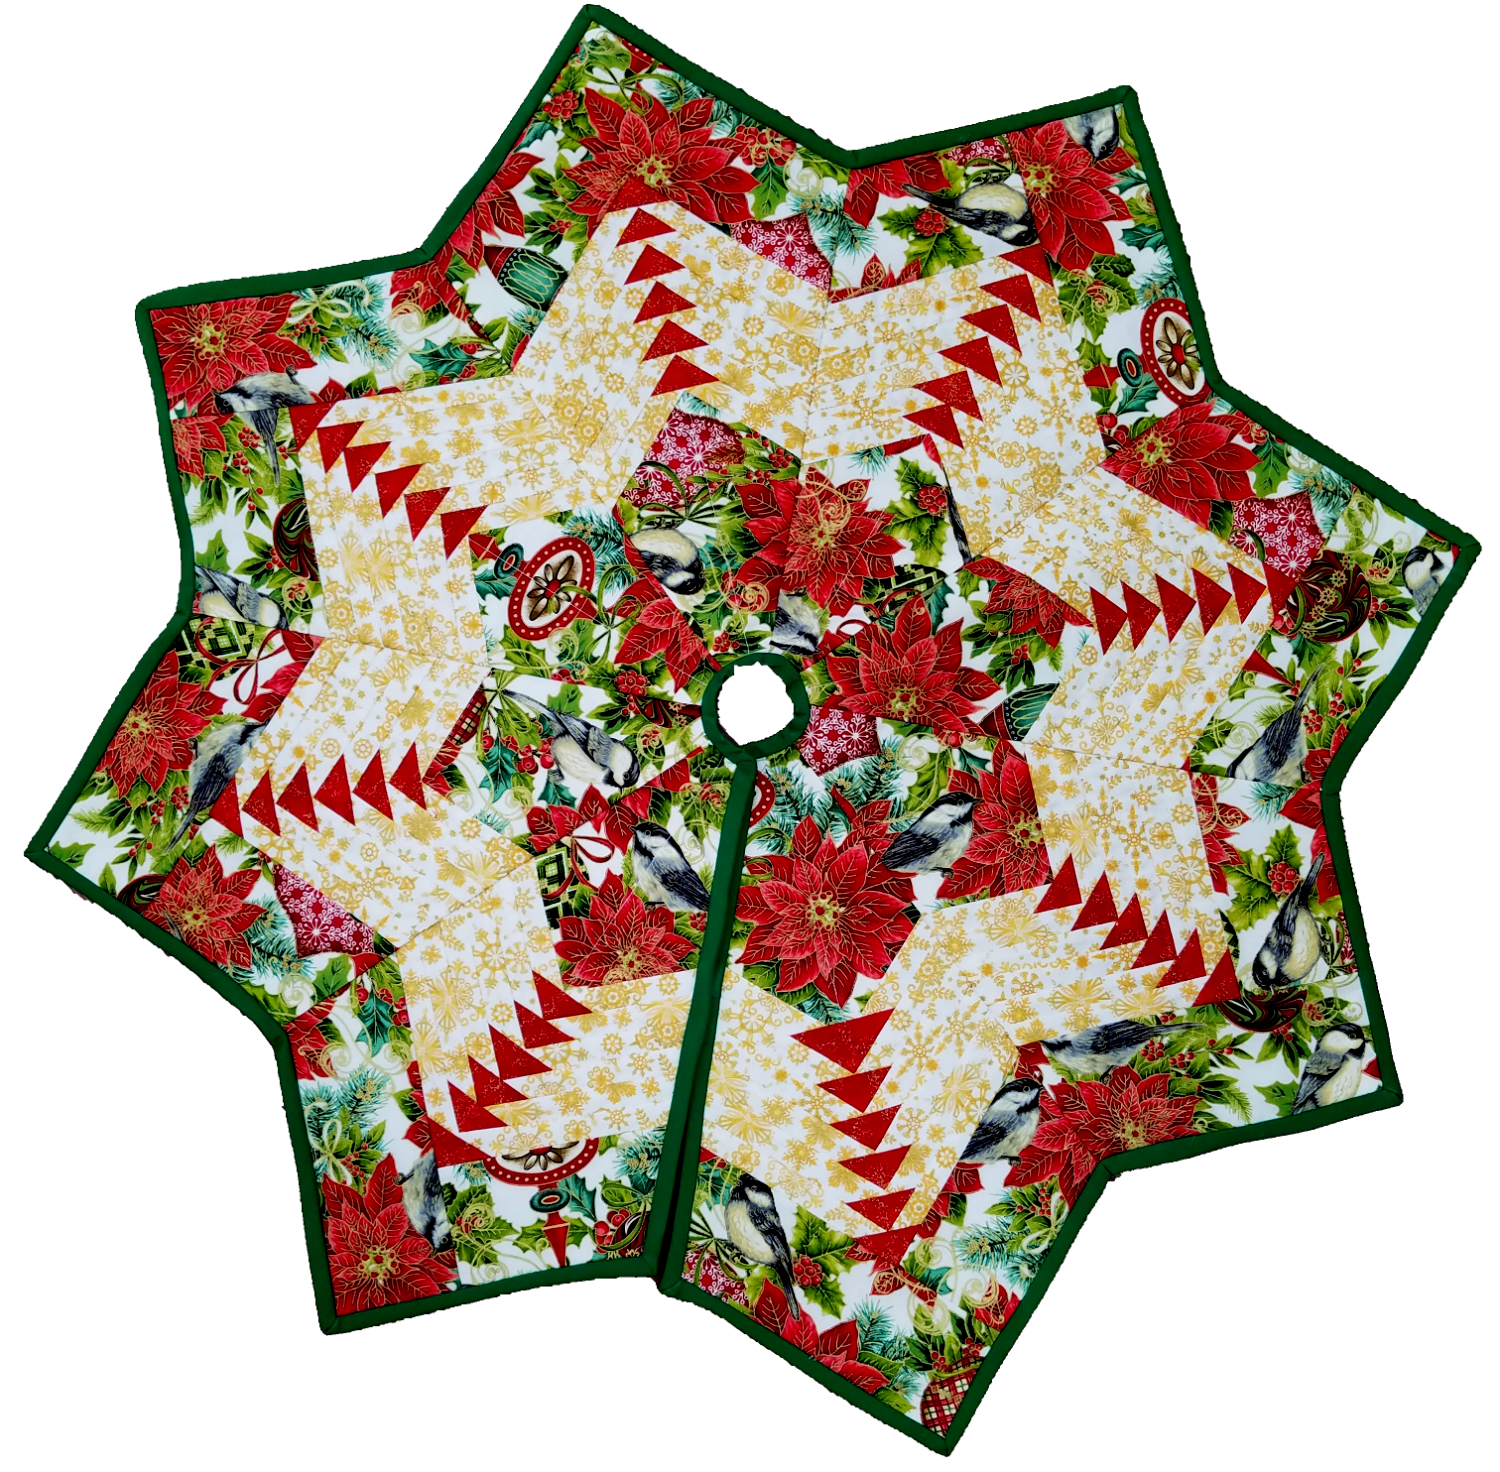 Small Quilted Tree Skirt